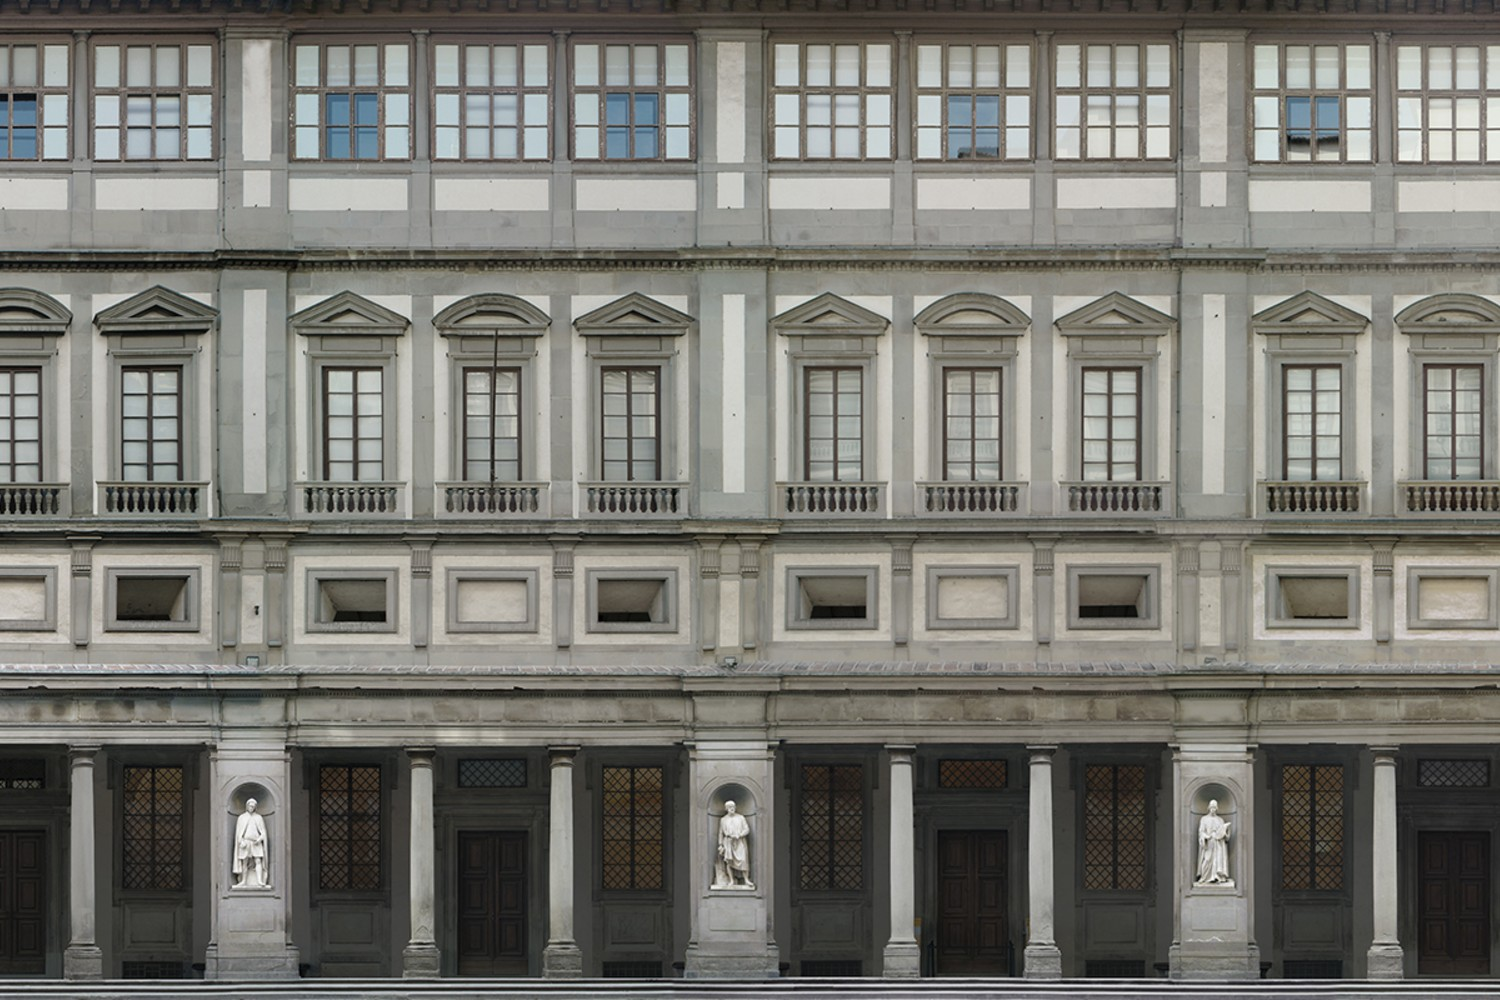 The-Uffizi-Gallery-in-Florence-2